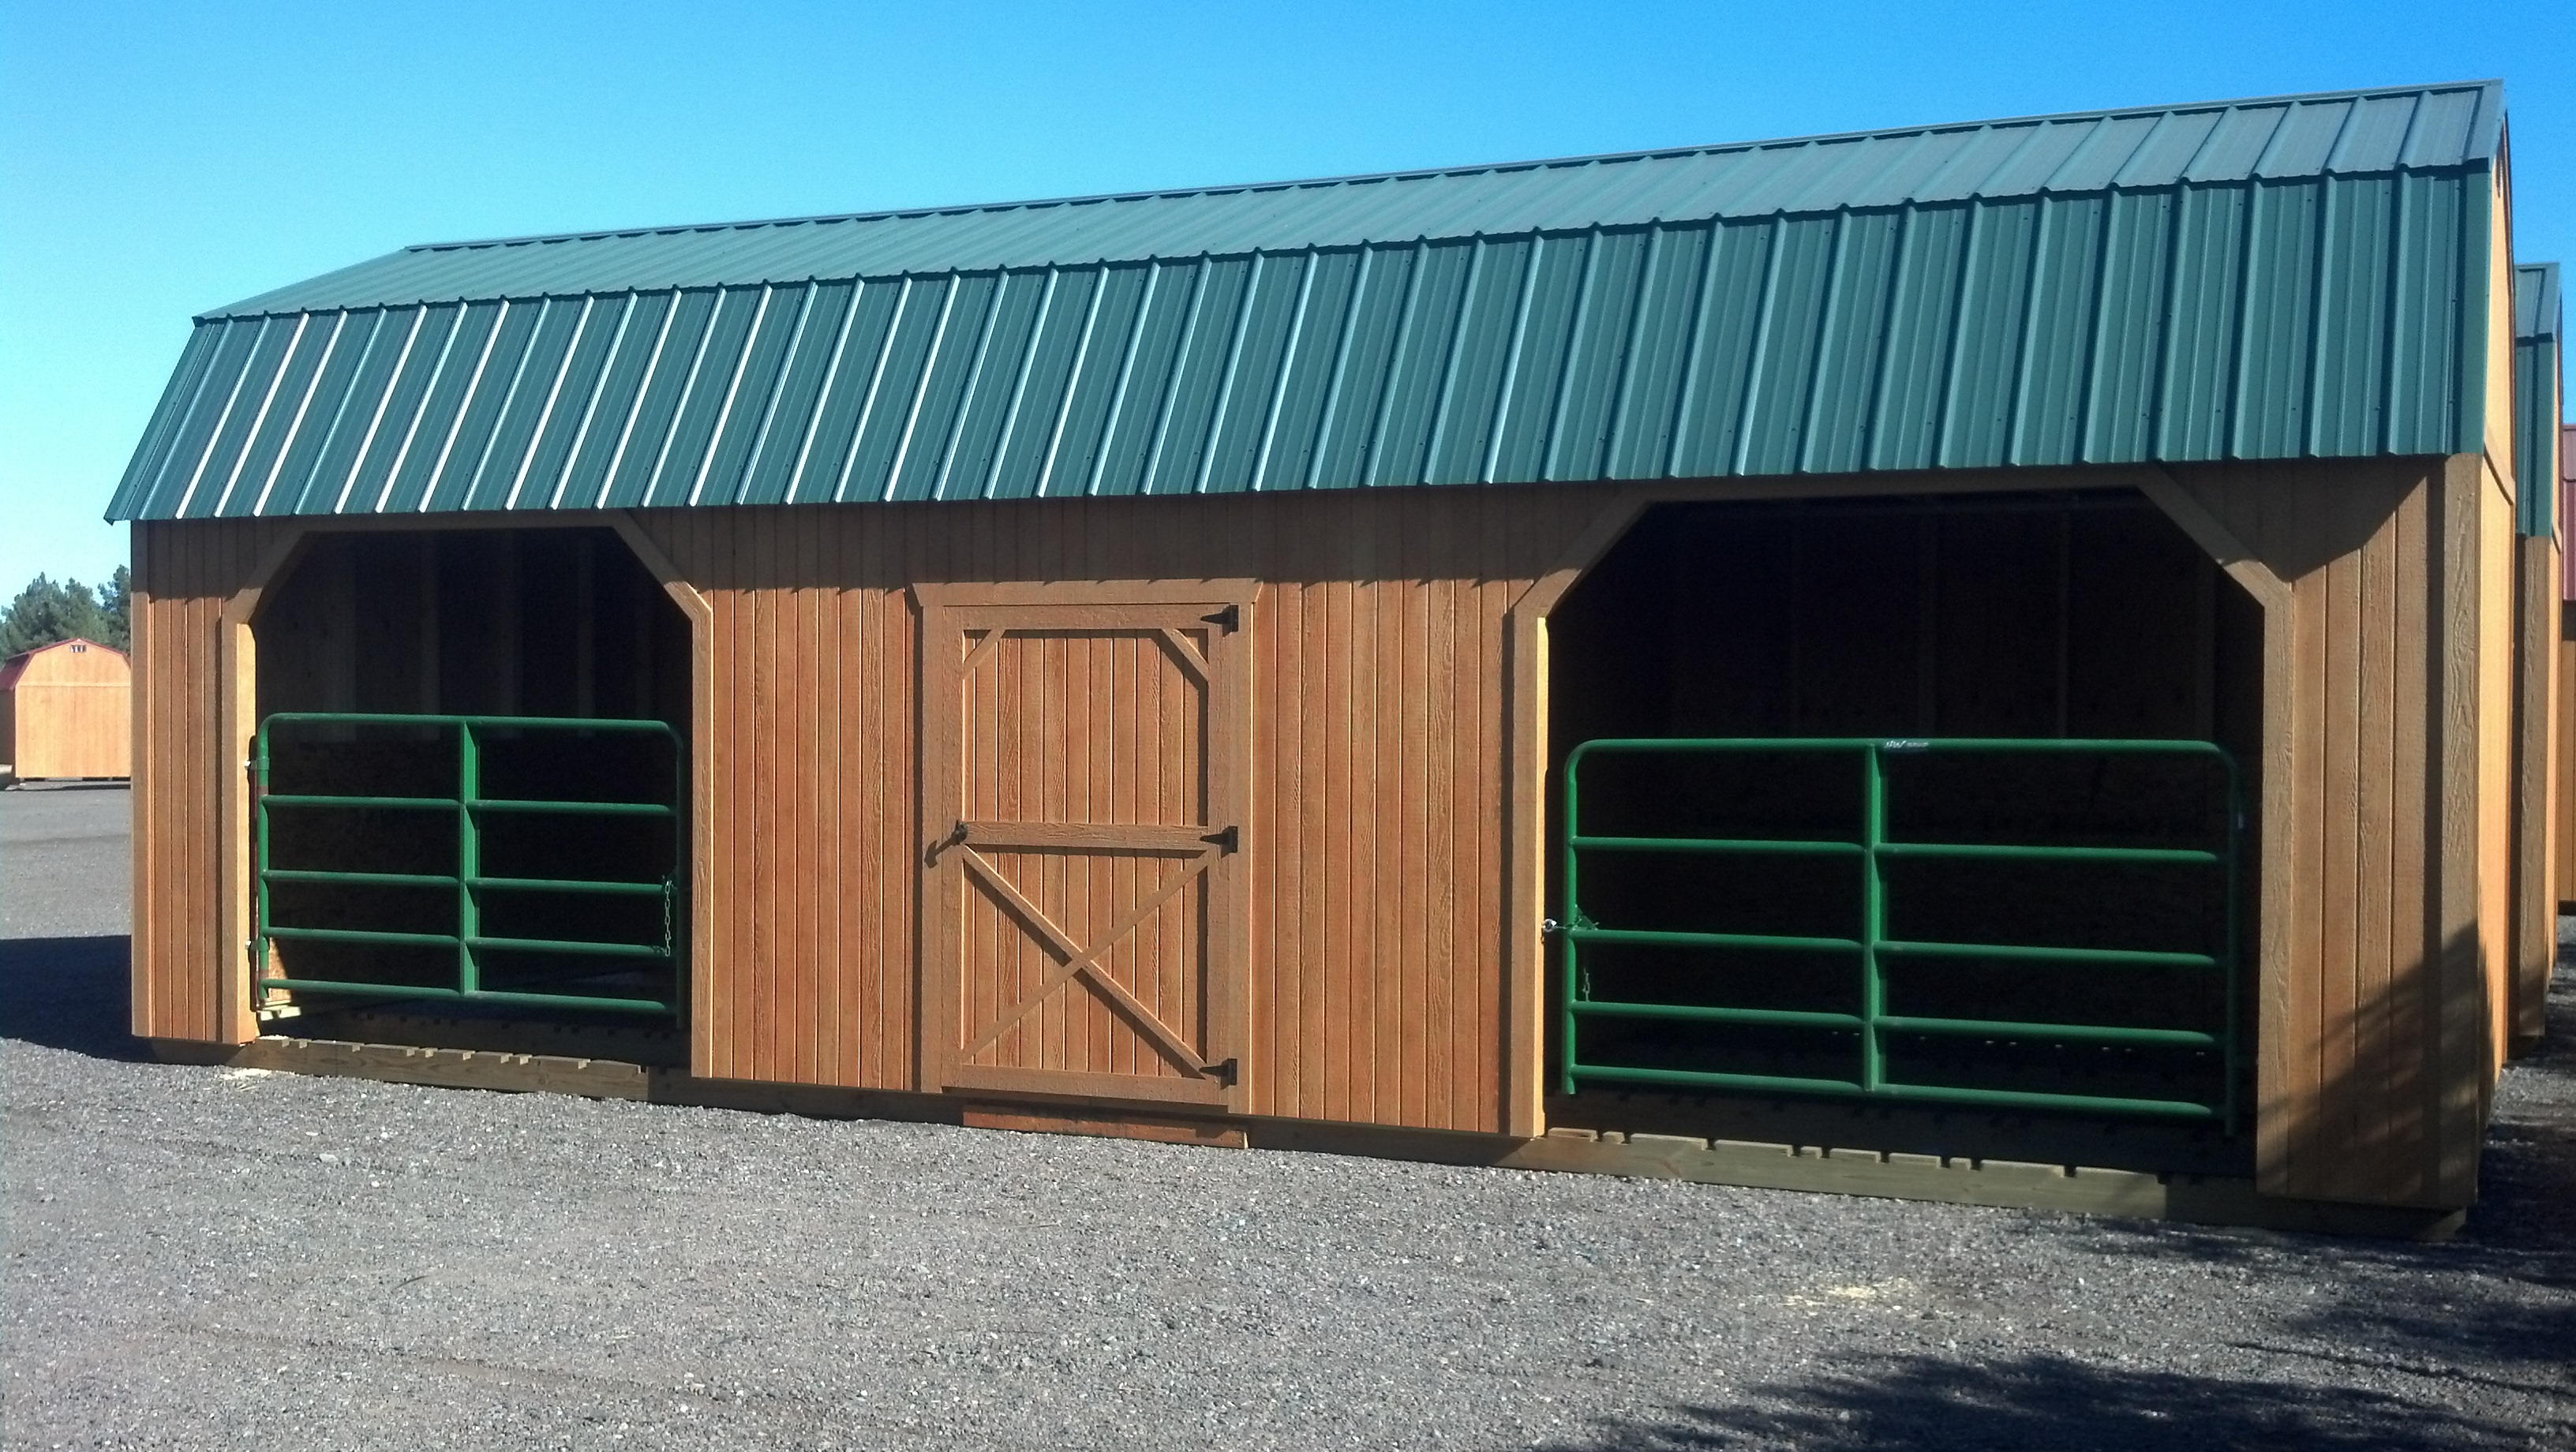 wv built outdoor amish our and now available barn at delivered horse new img here all are va models custom modular see barns product alert md